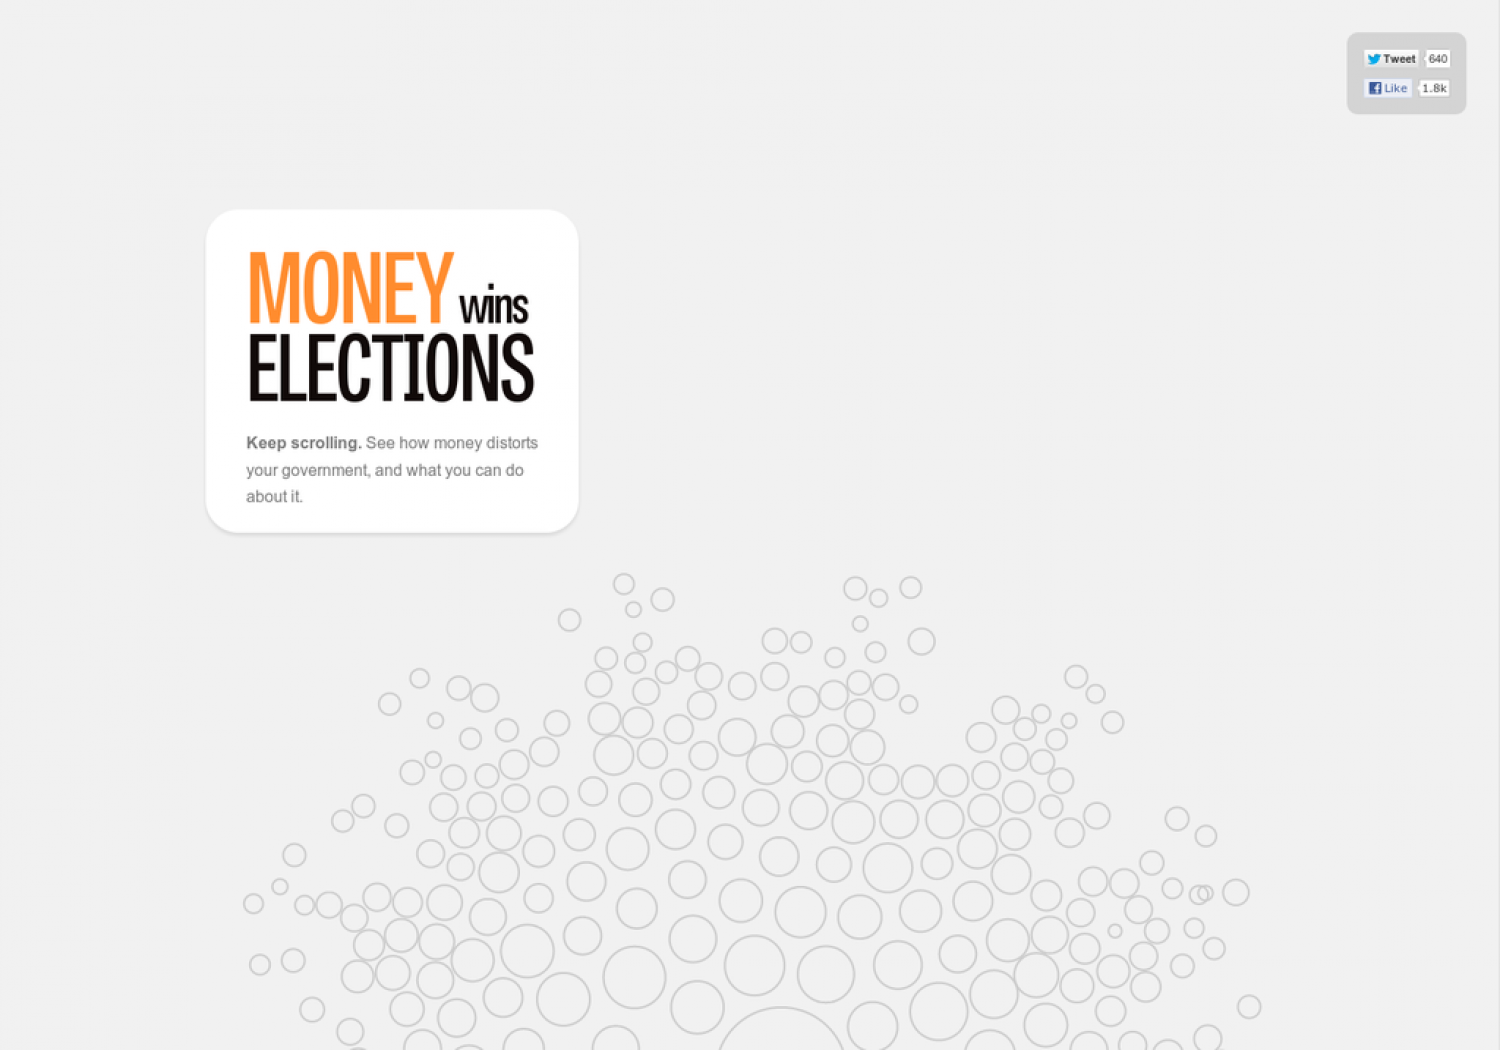 Money Wins Elections Infographic